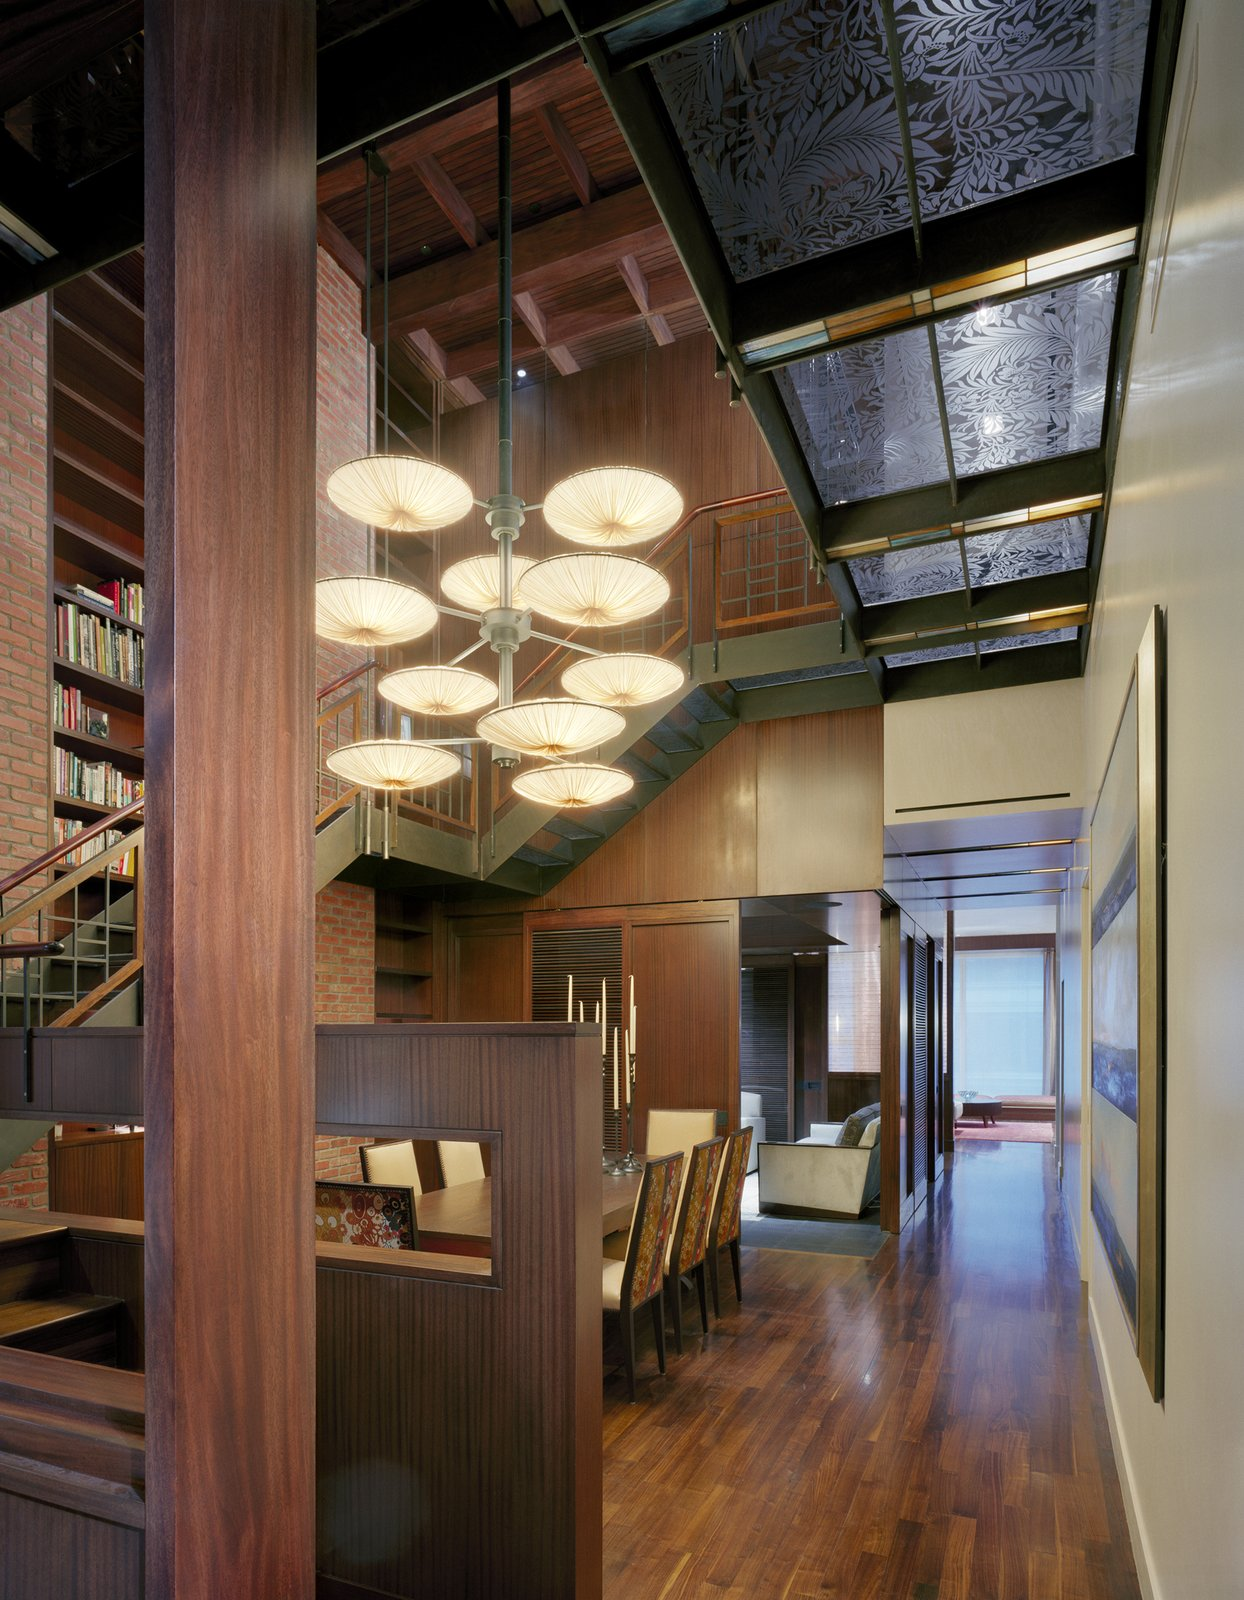 Dining Room, Accent Lighting, Ceiling Lighting, Medium Hardwood Floor, Table, and Chair SPAN Architecture recast this two-level space in New York City—previously a photography studio—as a loft-like residence that is rich in materials. A blackened steel staircase, executed by general contractor Richard Kaleta, leads to the private quarters on the duplex's second floor. The walkway is composed of custom etched glass, stretched across an open atrium to below.   Photo 8 of 18 in 18 Homes That Keep Things Fresh With Central Atriums from A Warm, Luxurious New York City Duplex with a Dramatic Catwalk